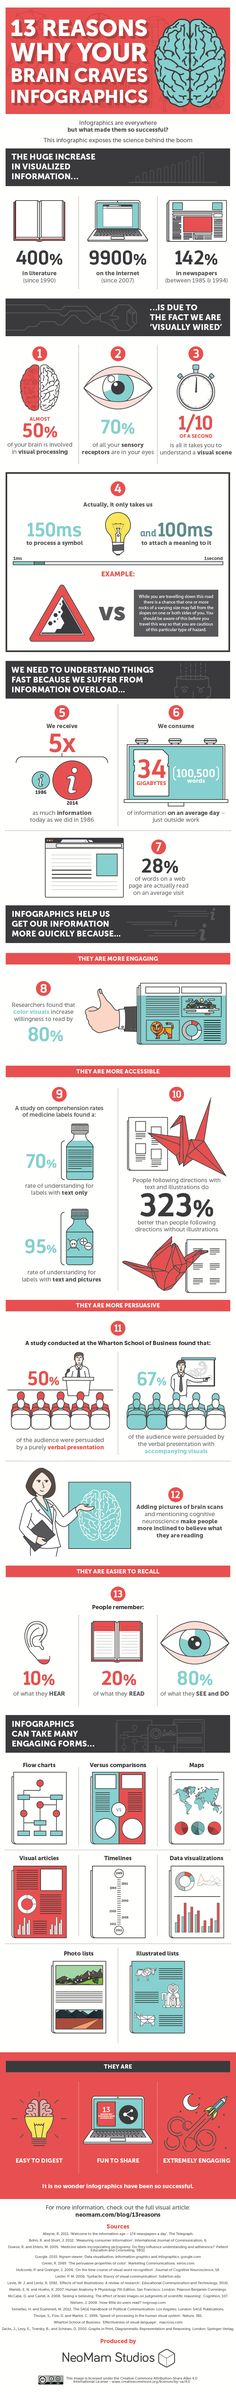 The Science Behind Why Our Brains Crave Infographics